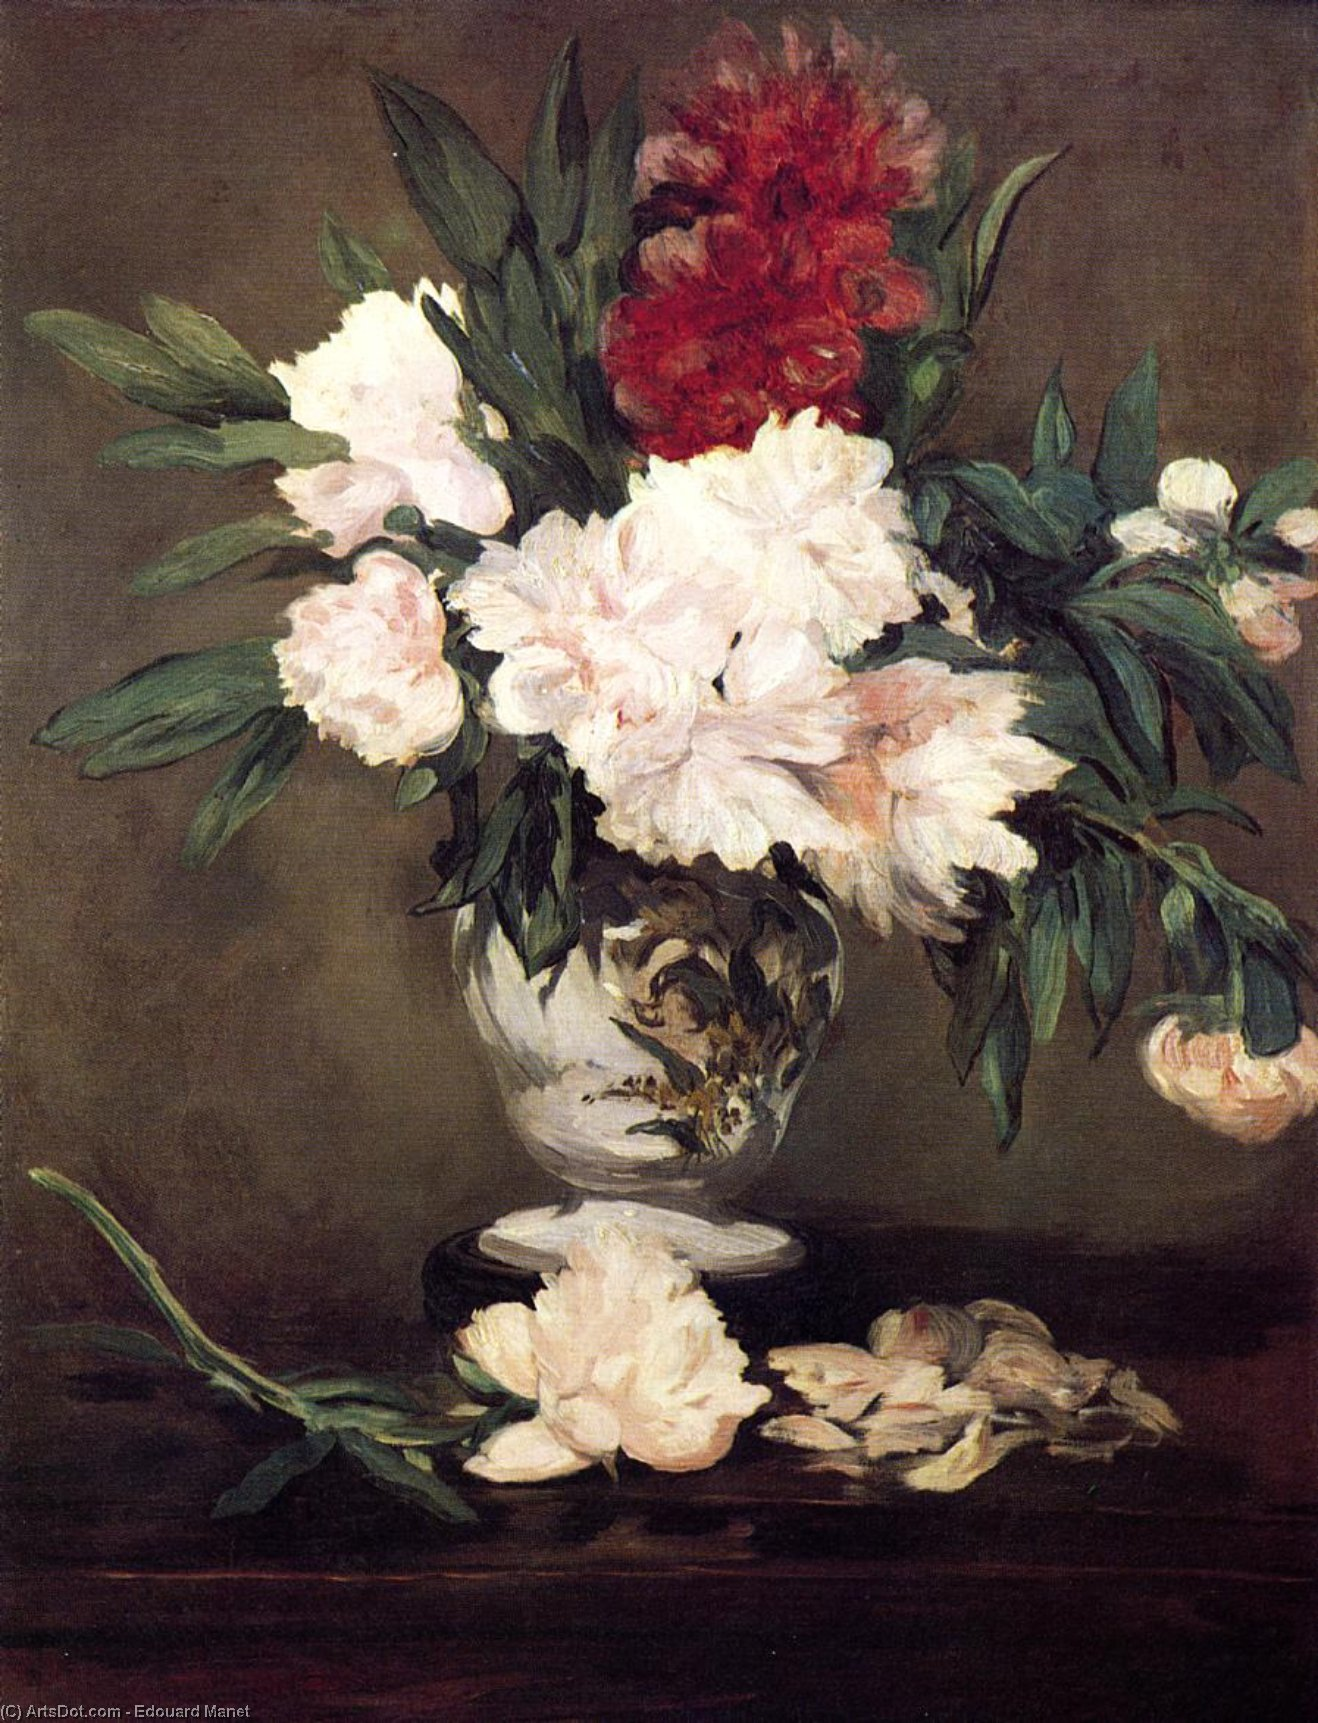 Wikioo.org - The Encyclopedia of Fine Arts - Painting, Artwork by Edouard Manet - Vase of Peonies on a Small Pedestal